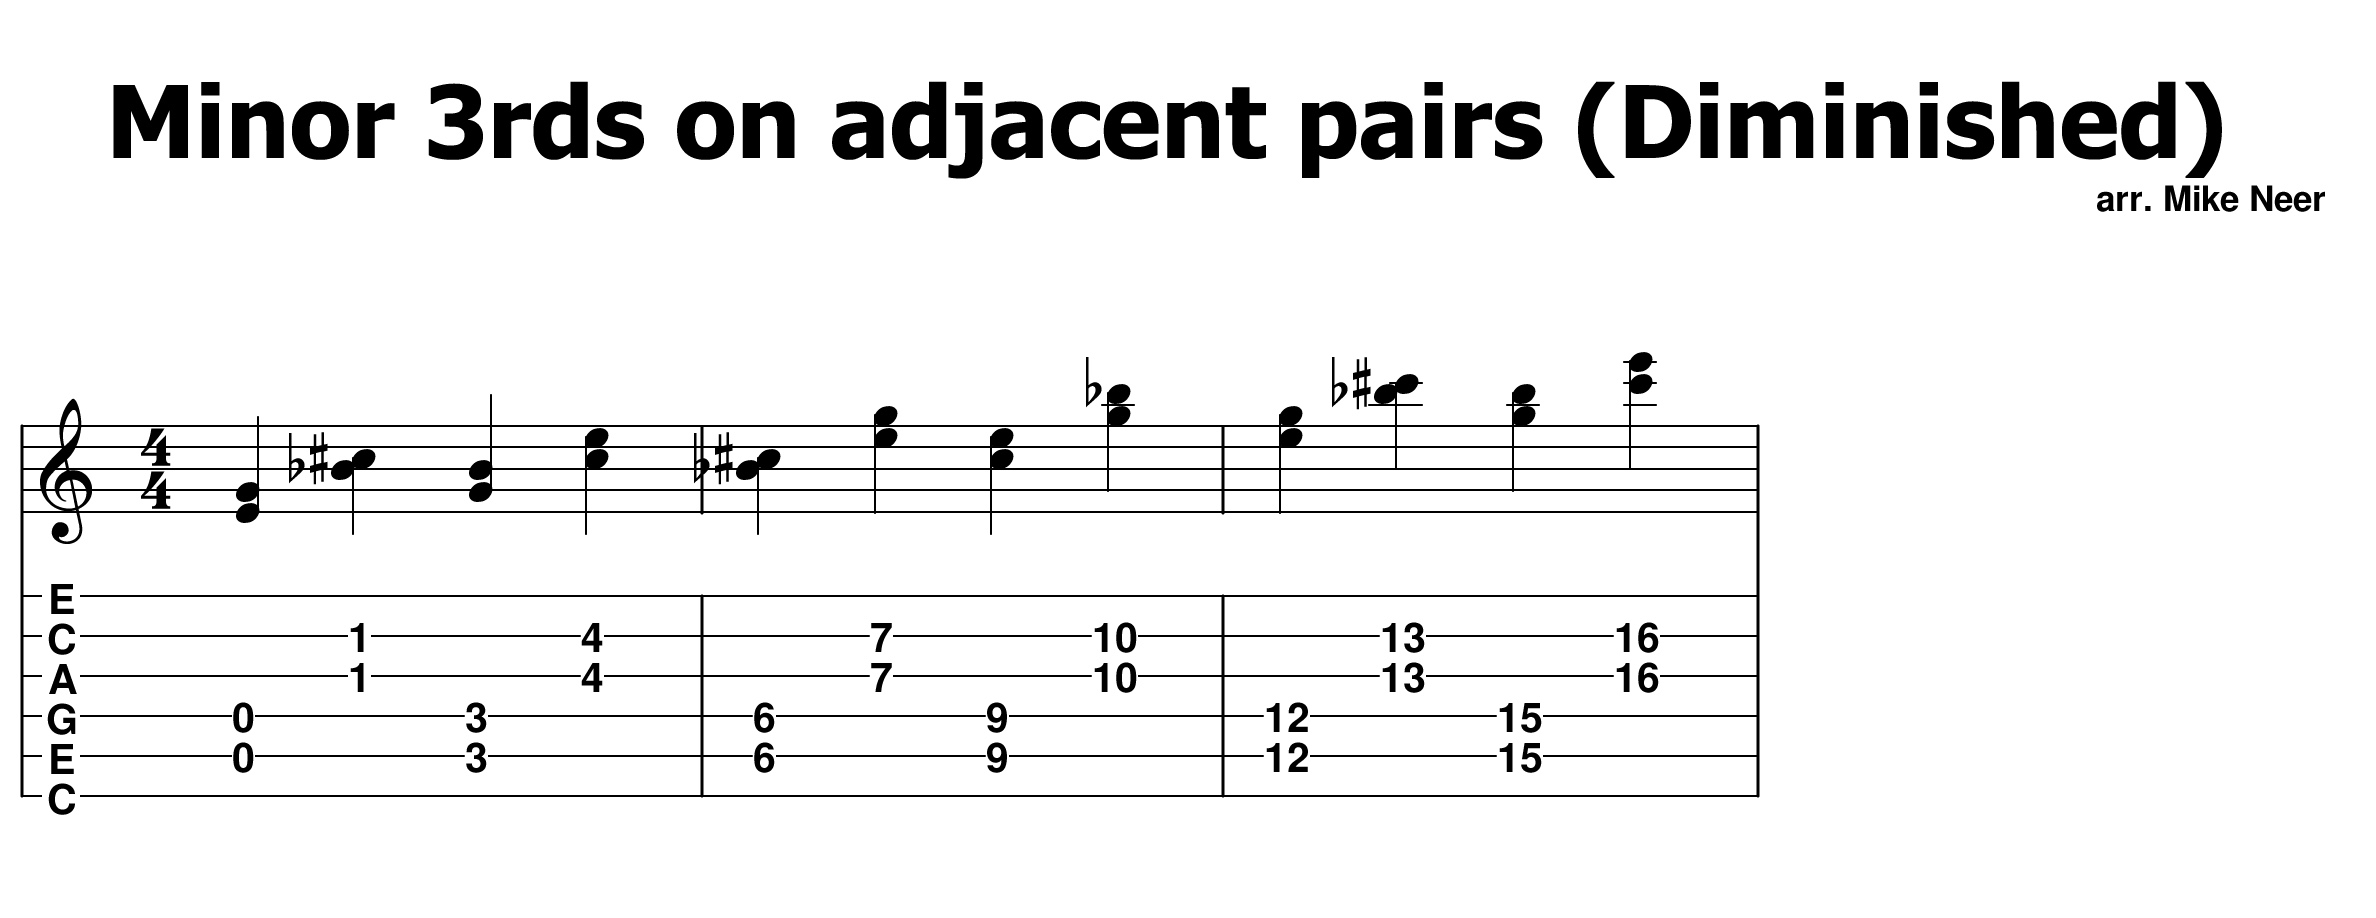 Minor 3rds on adjacent pairs (D